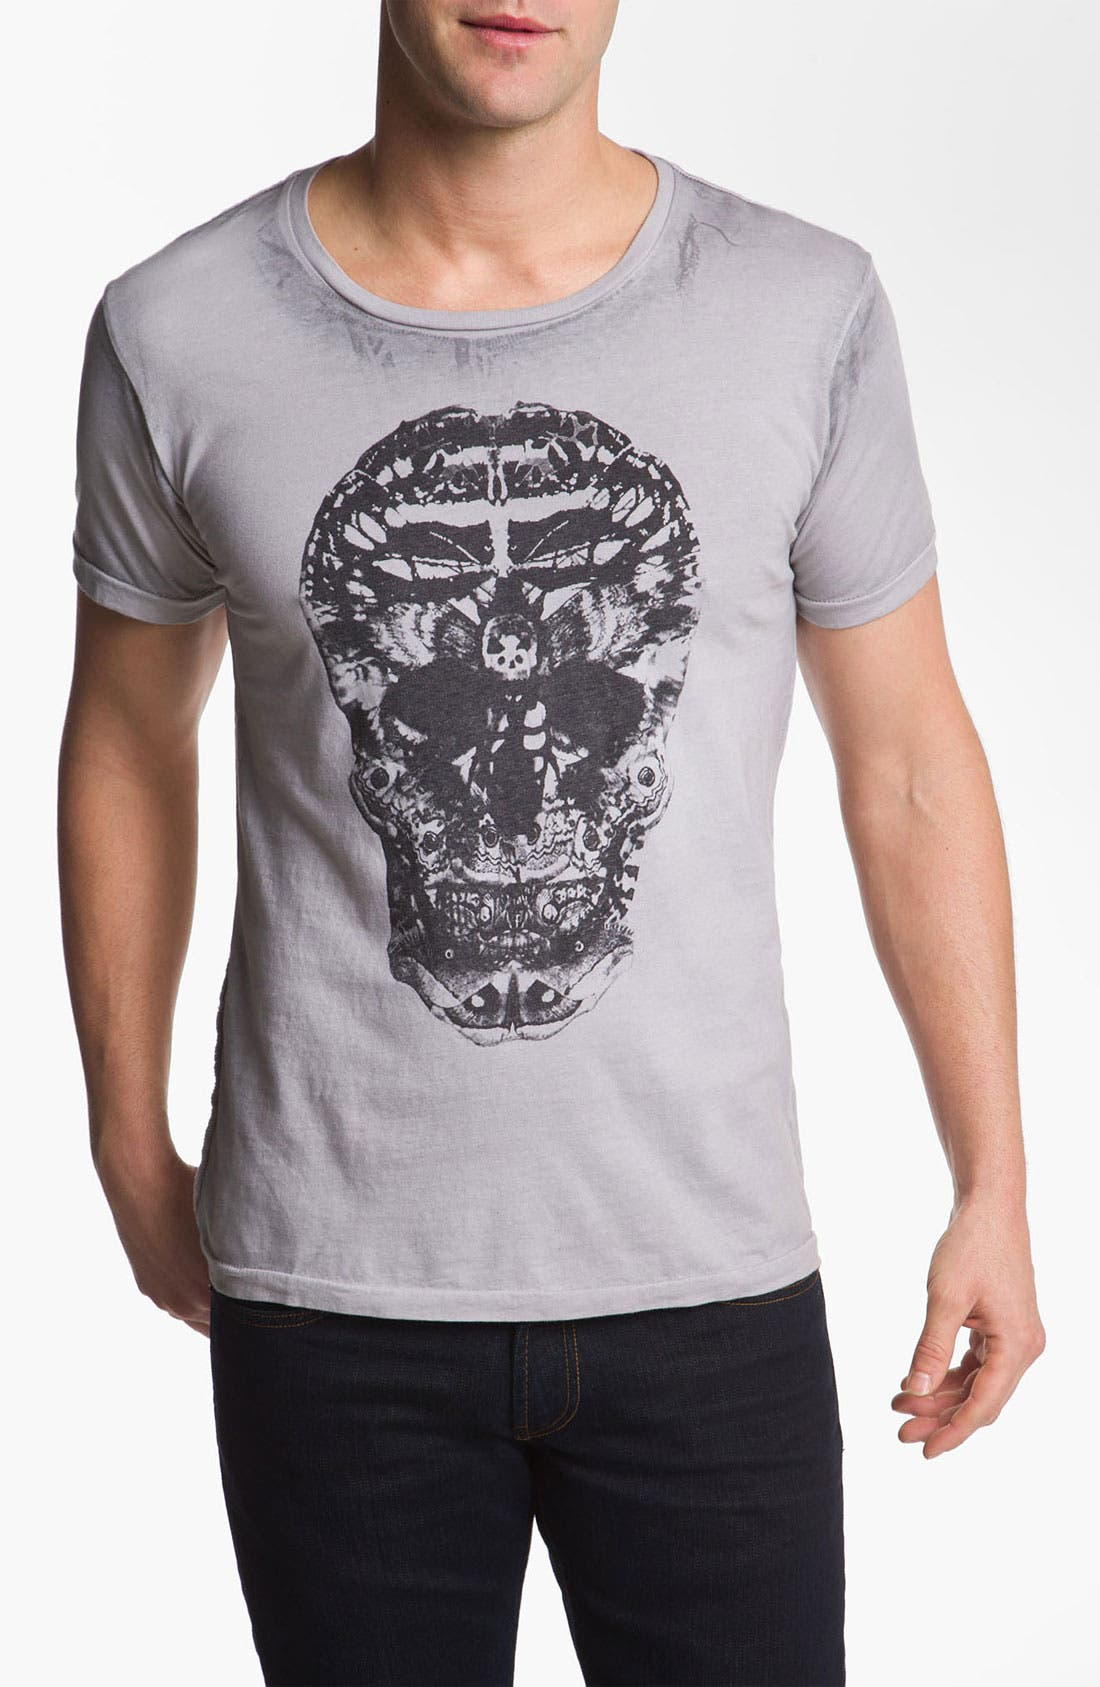 Alternate Image 1 Selected - Black Hearts Brigade 'Death Moth Skull' Graphic T-Shirt